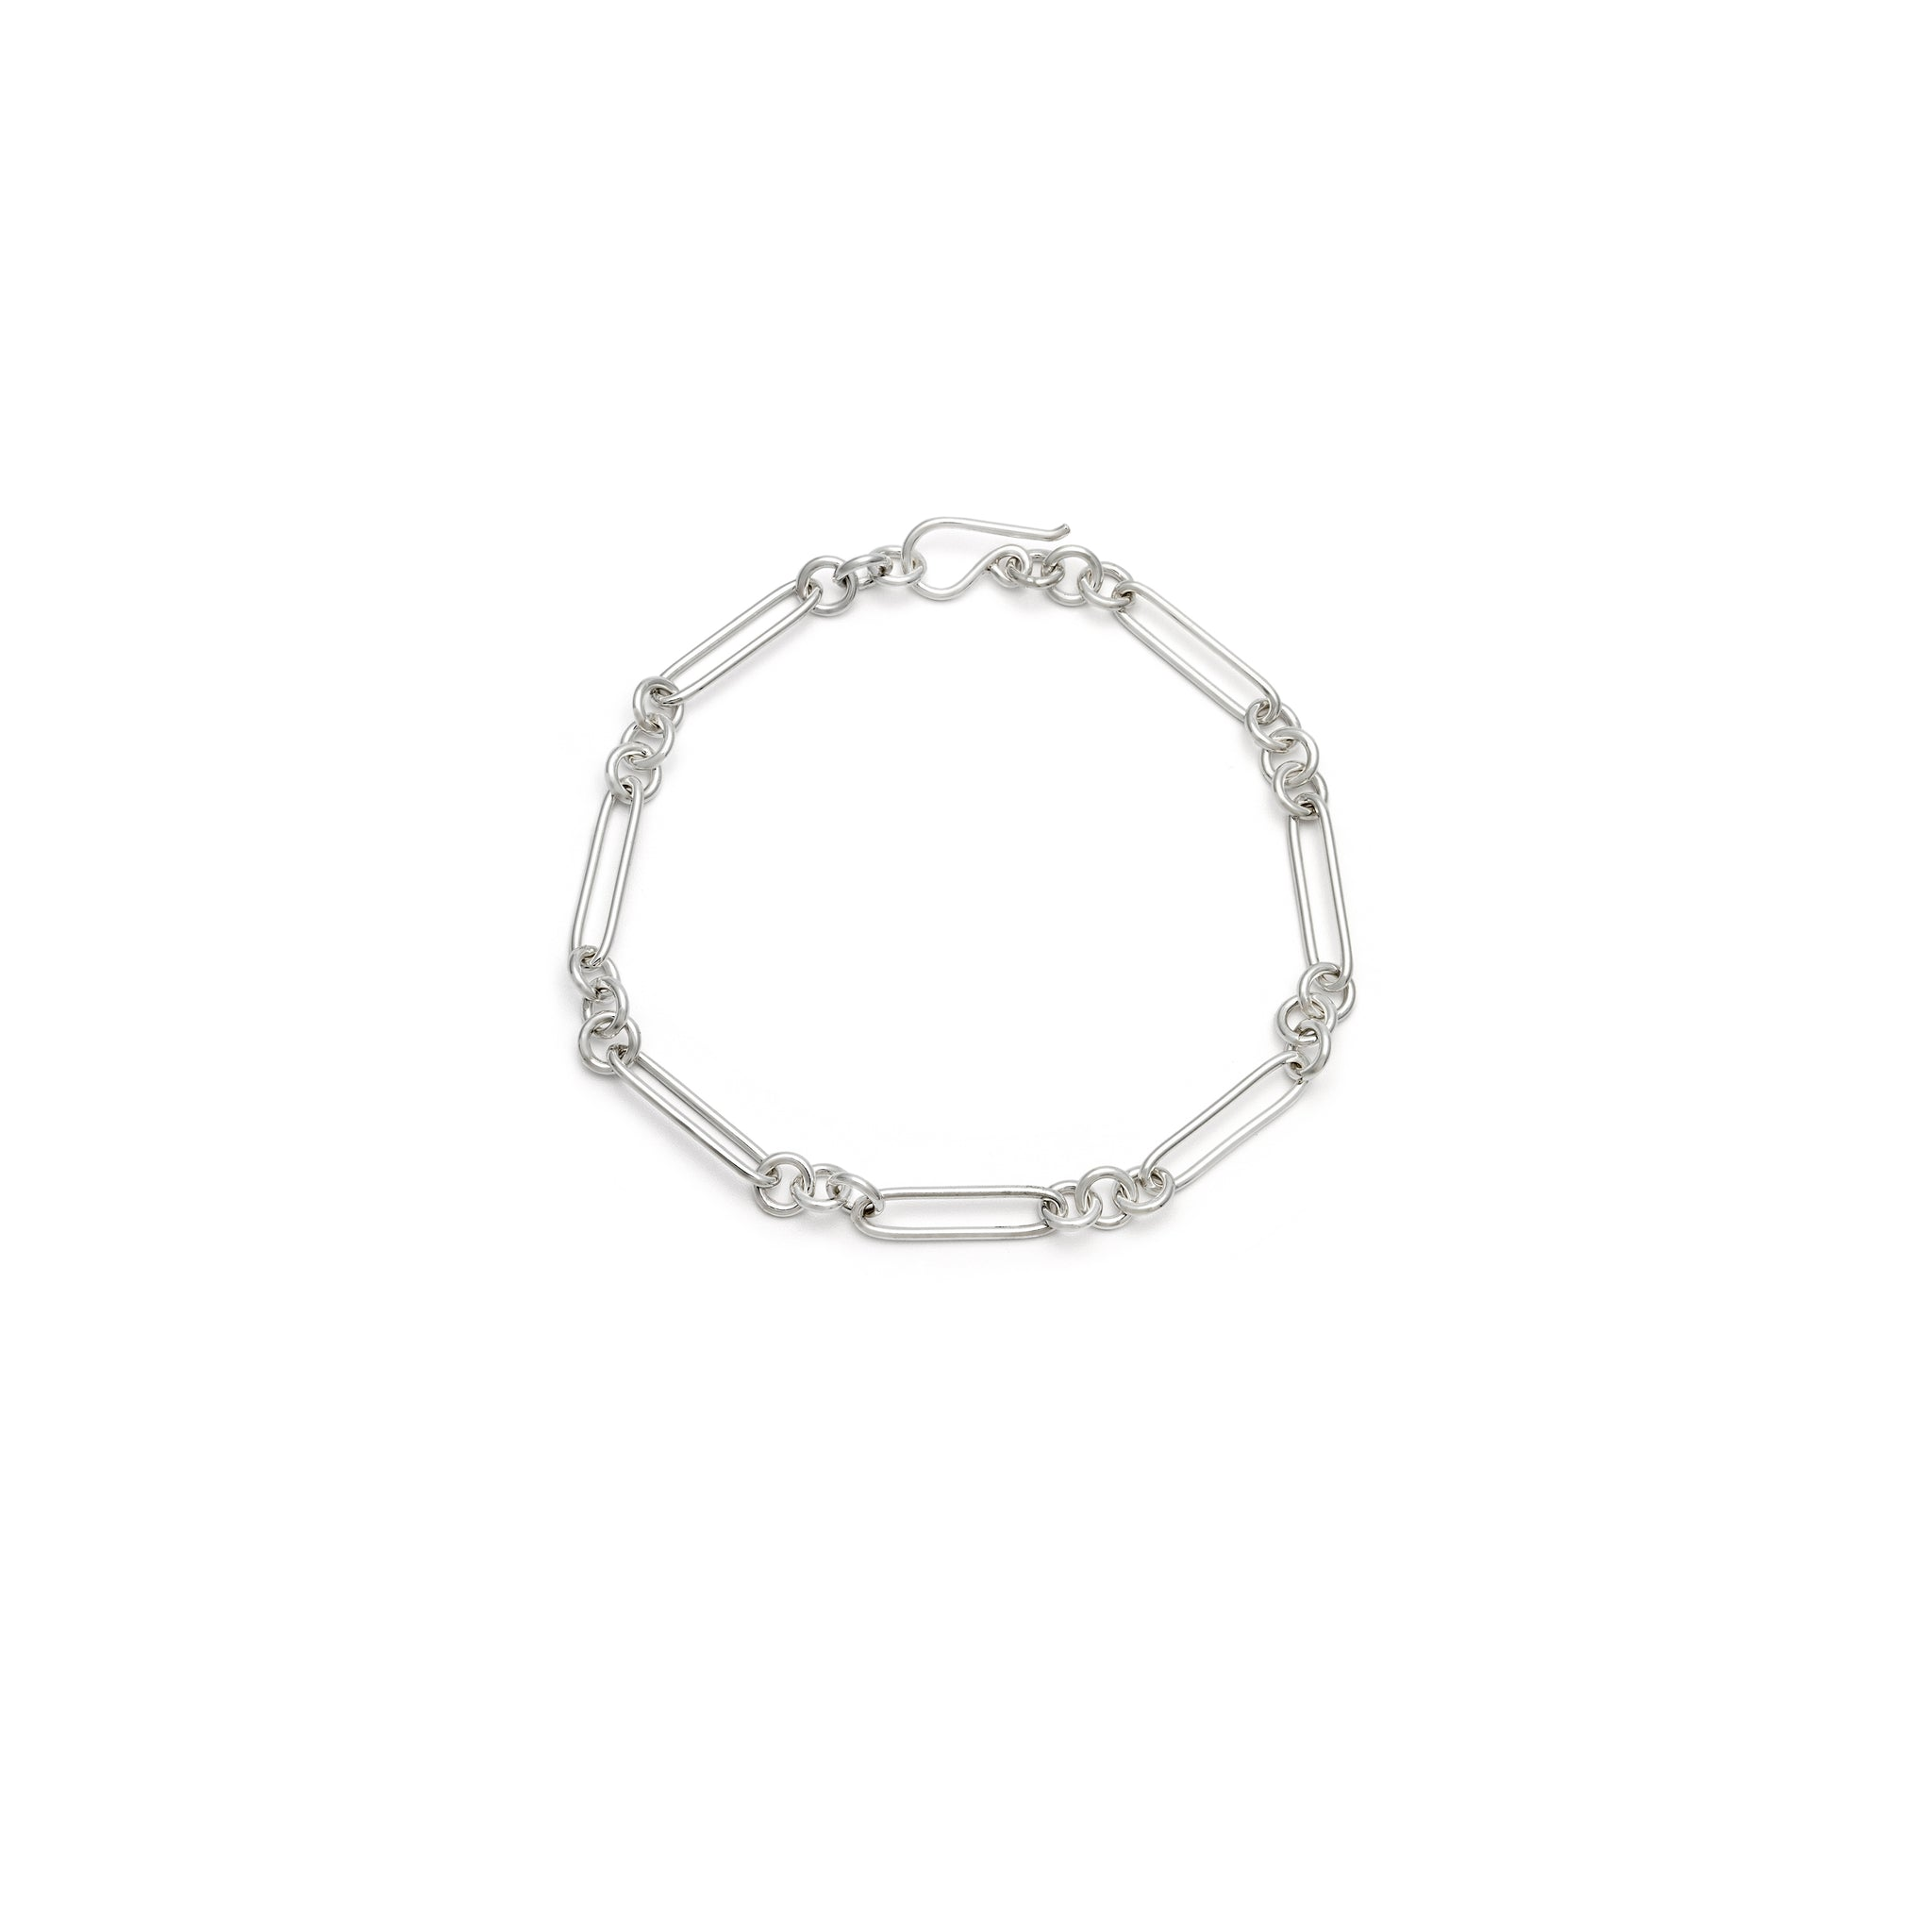 Mixed Link Chain Bracelet